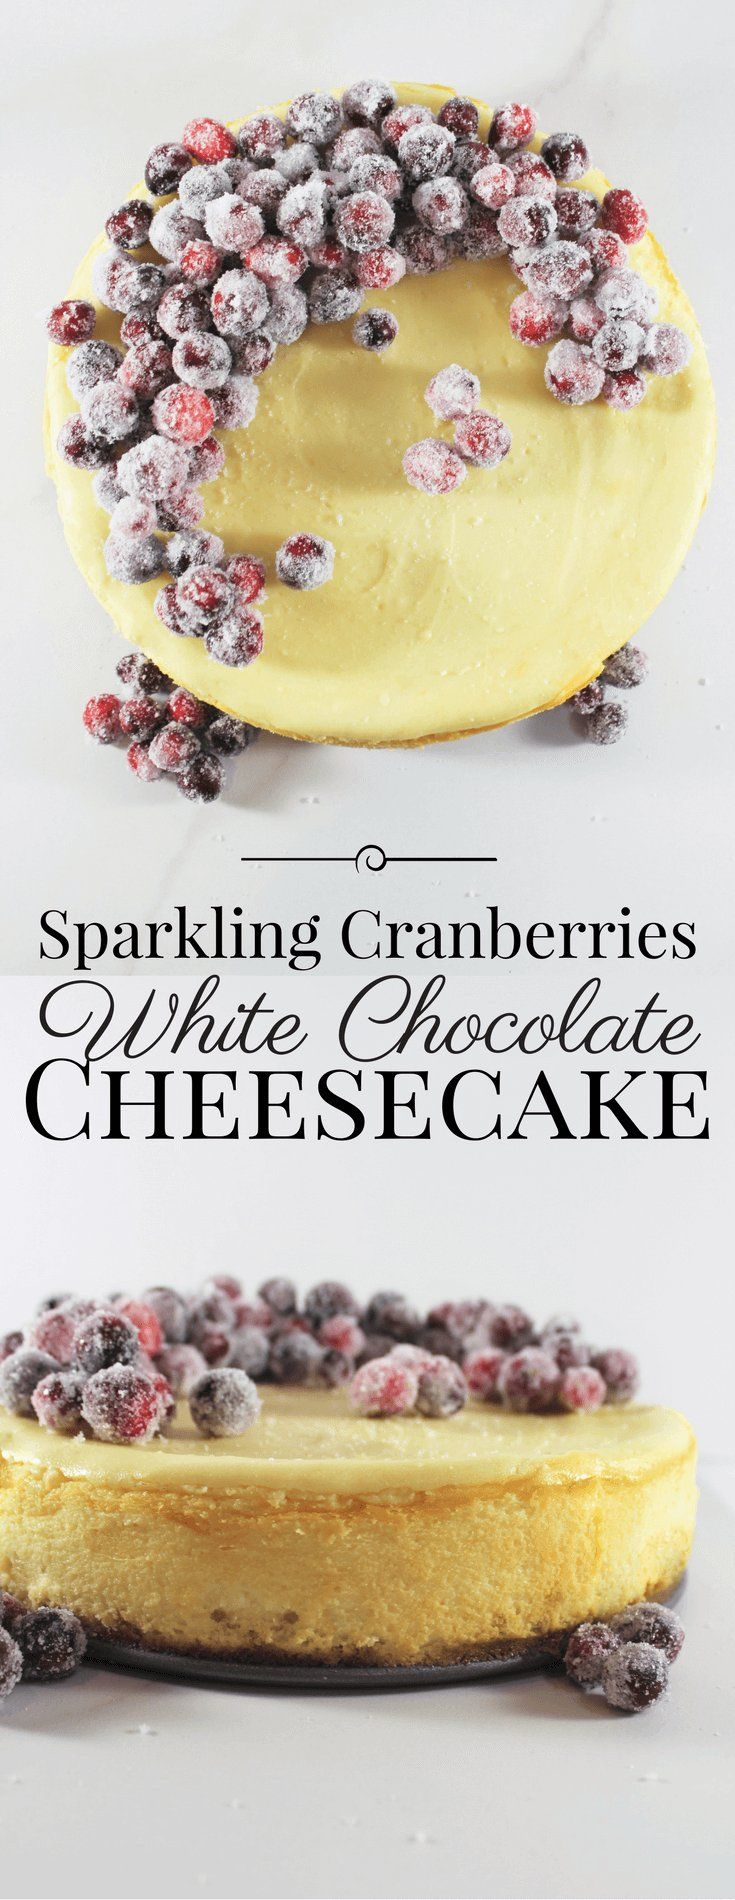 Sparkling Vranberries White Chocolate Cheesecake